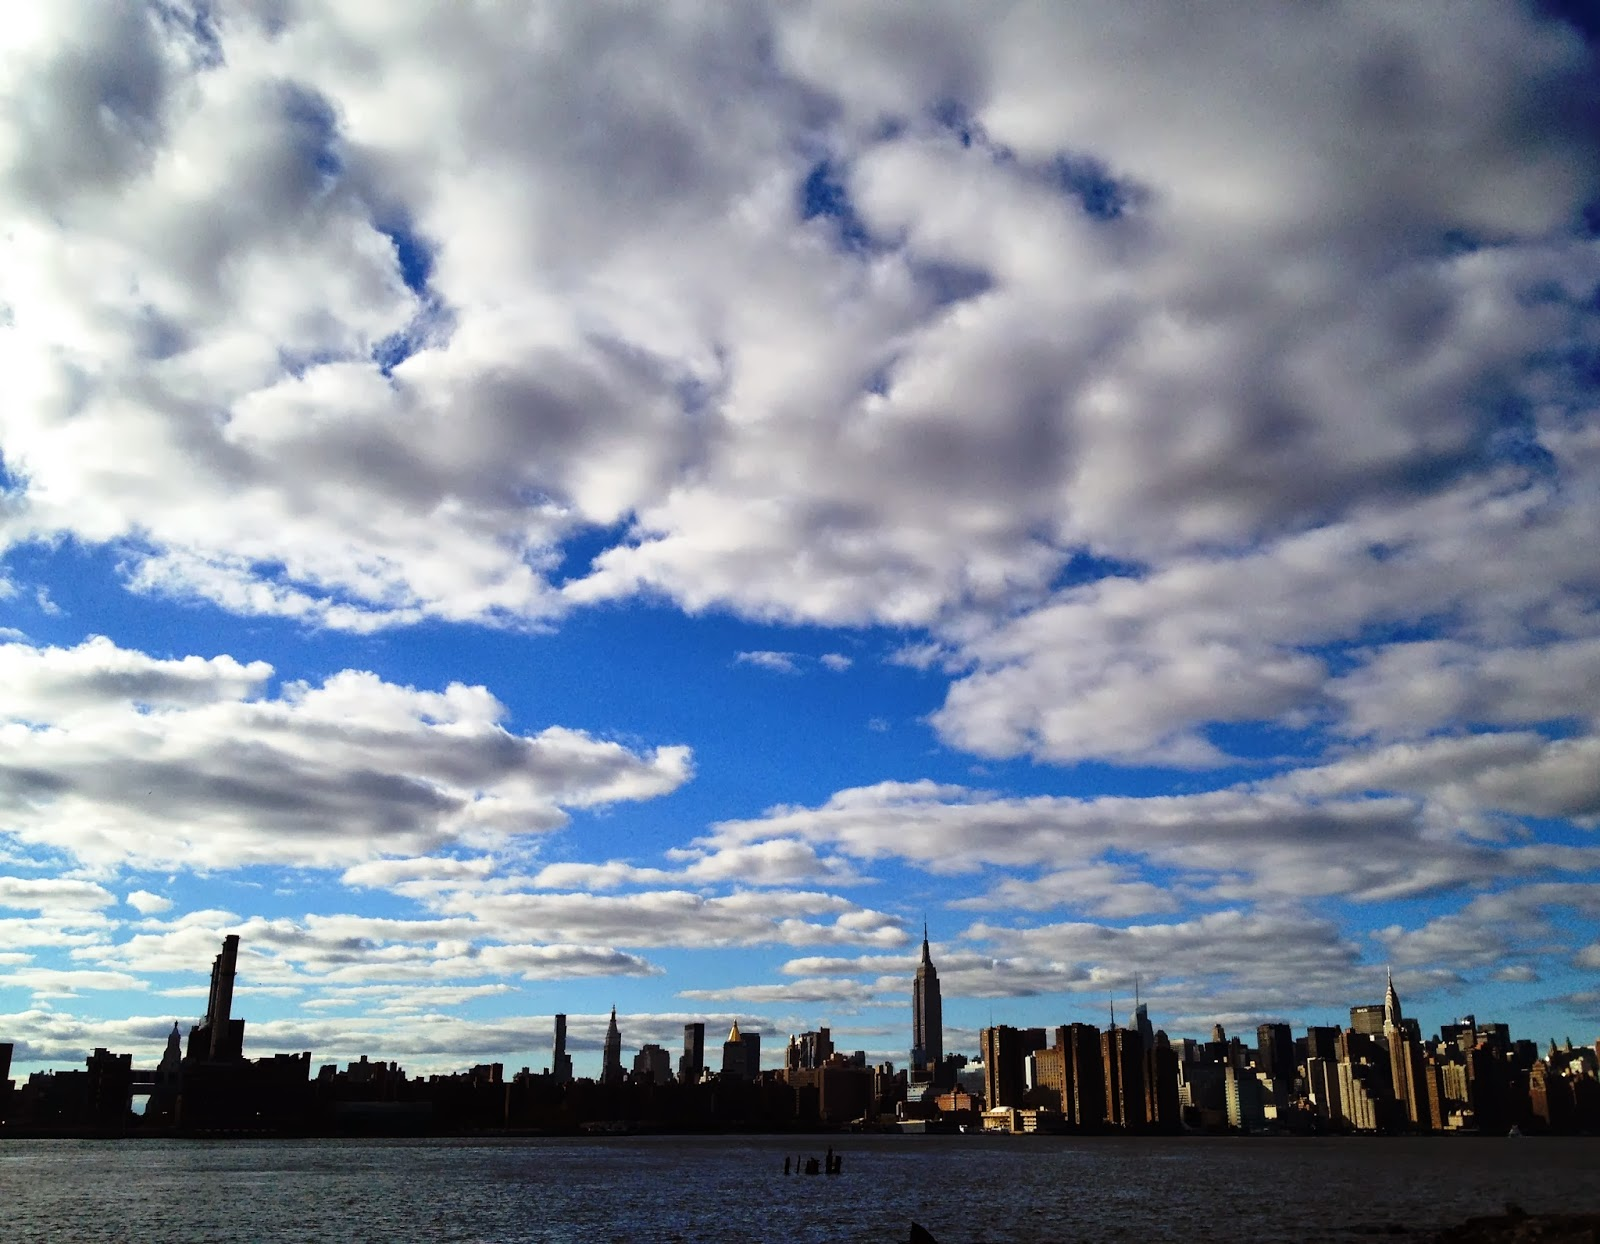 new york city skyline, nyc skyline, empire state building, empire state of mind, east river, nyc, beautiful clouds